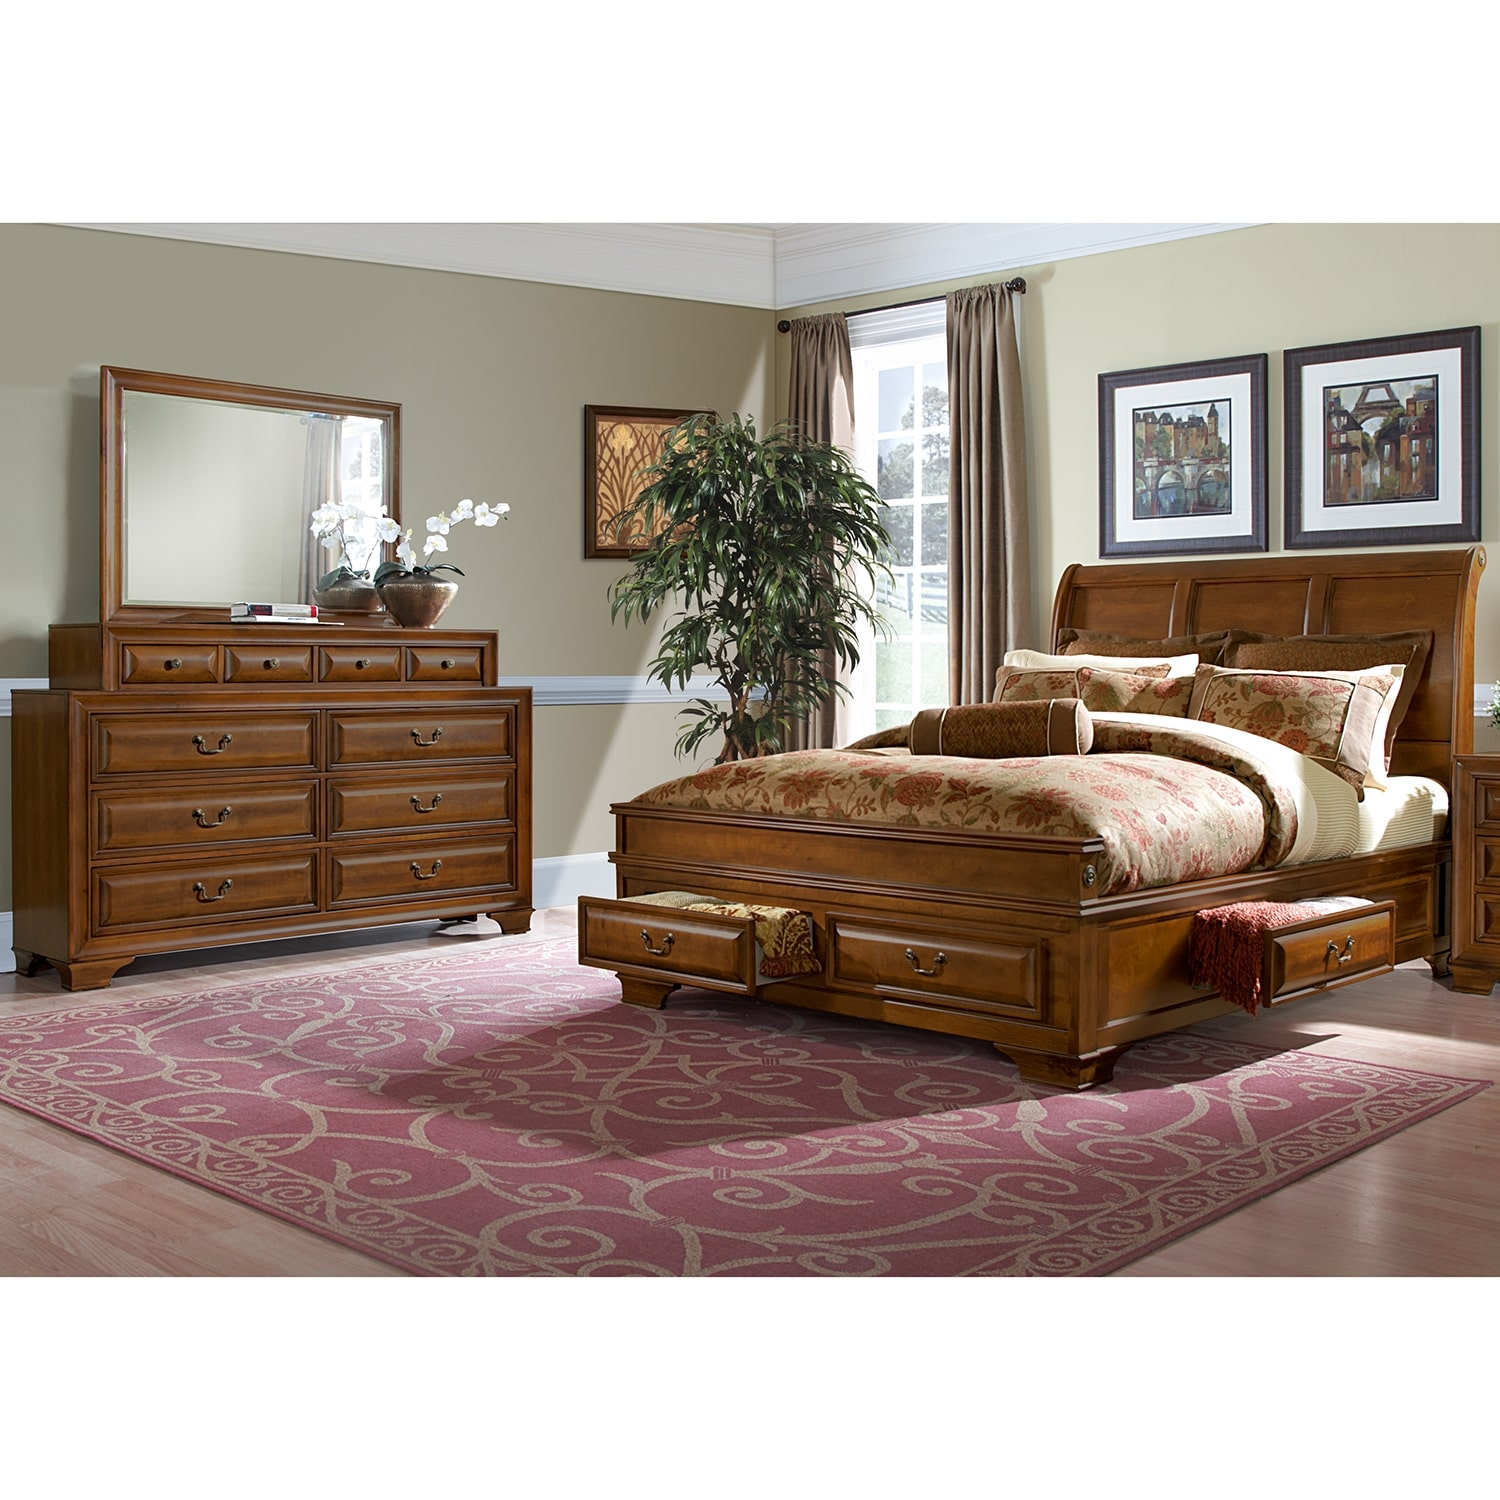 Sanibelle 5-Piece King Storage Bedroom Set - Pine